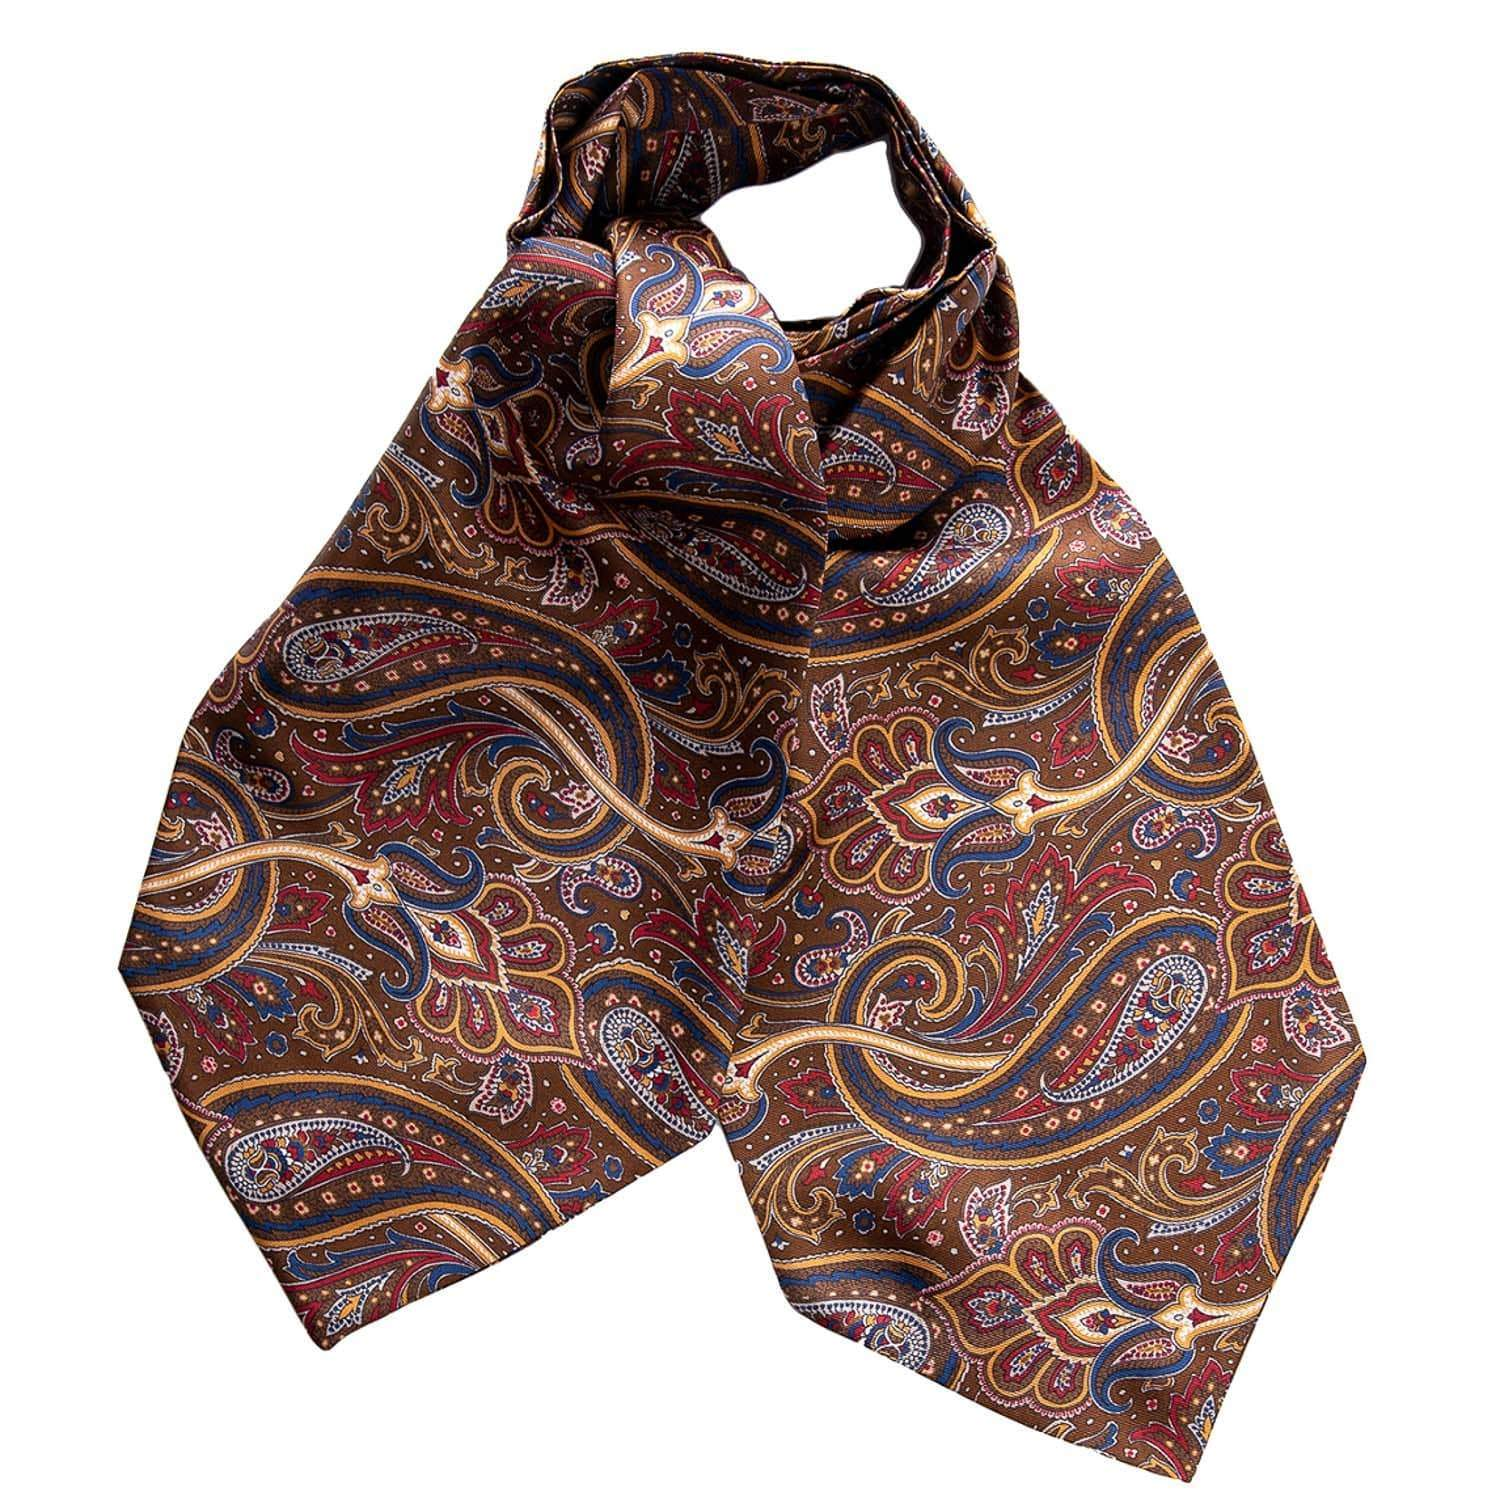 Brown Paisley Ascot Tie - Pure Silk - Made in Italy